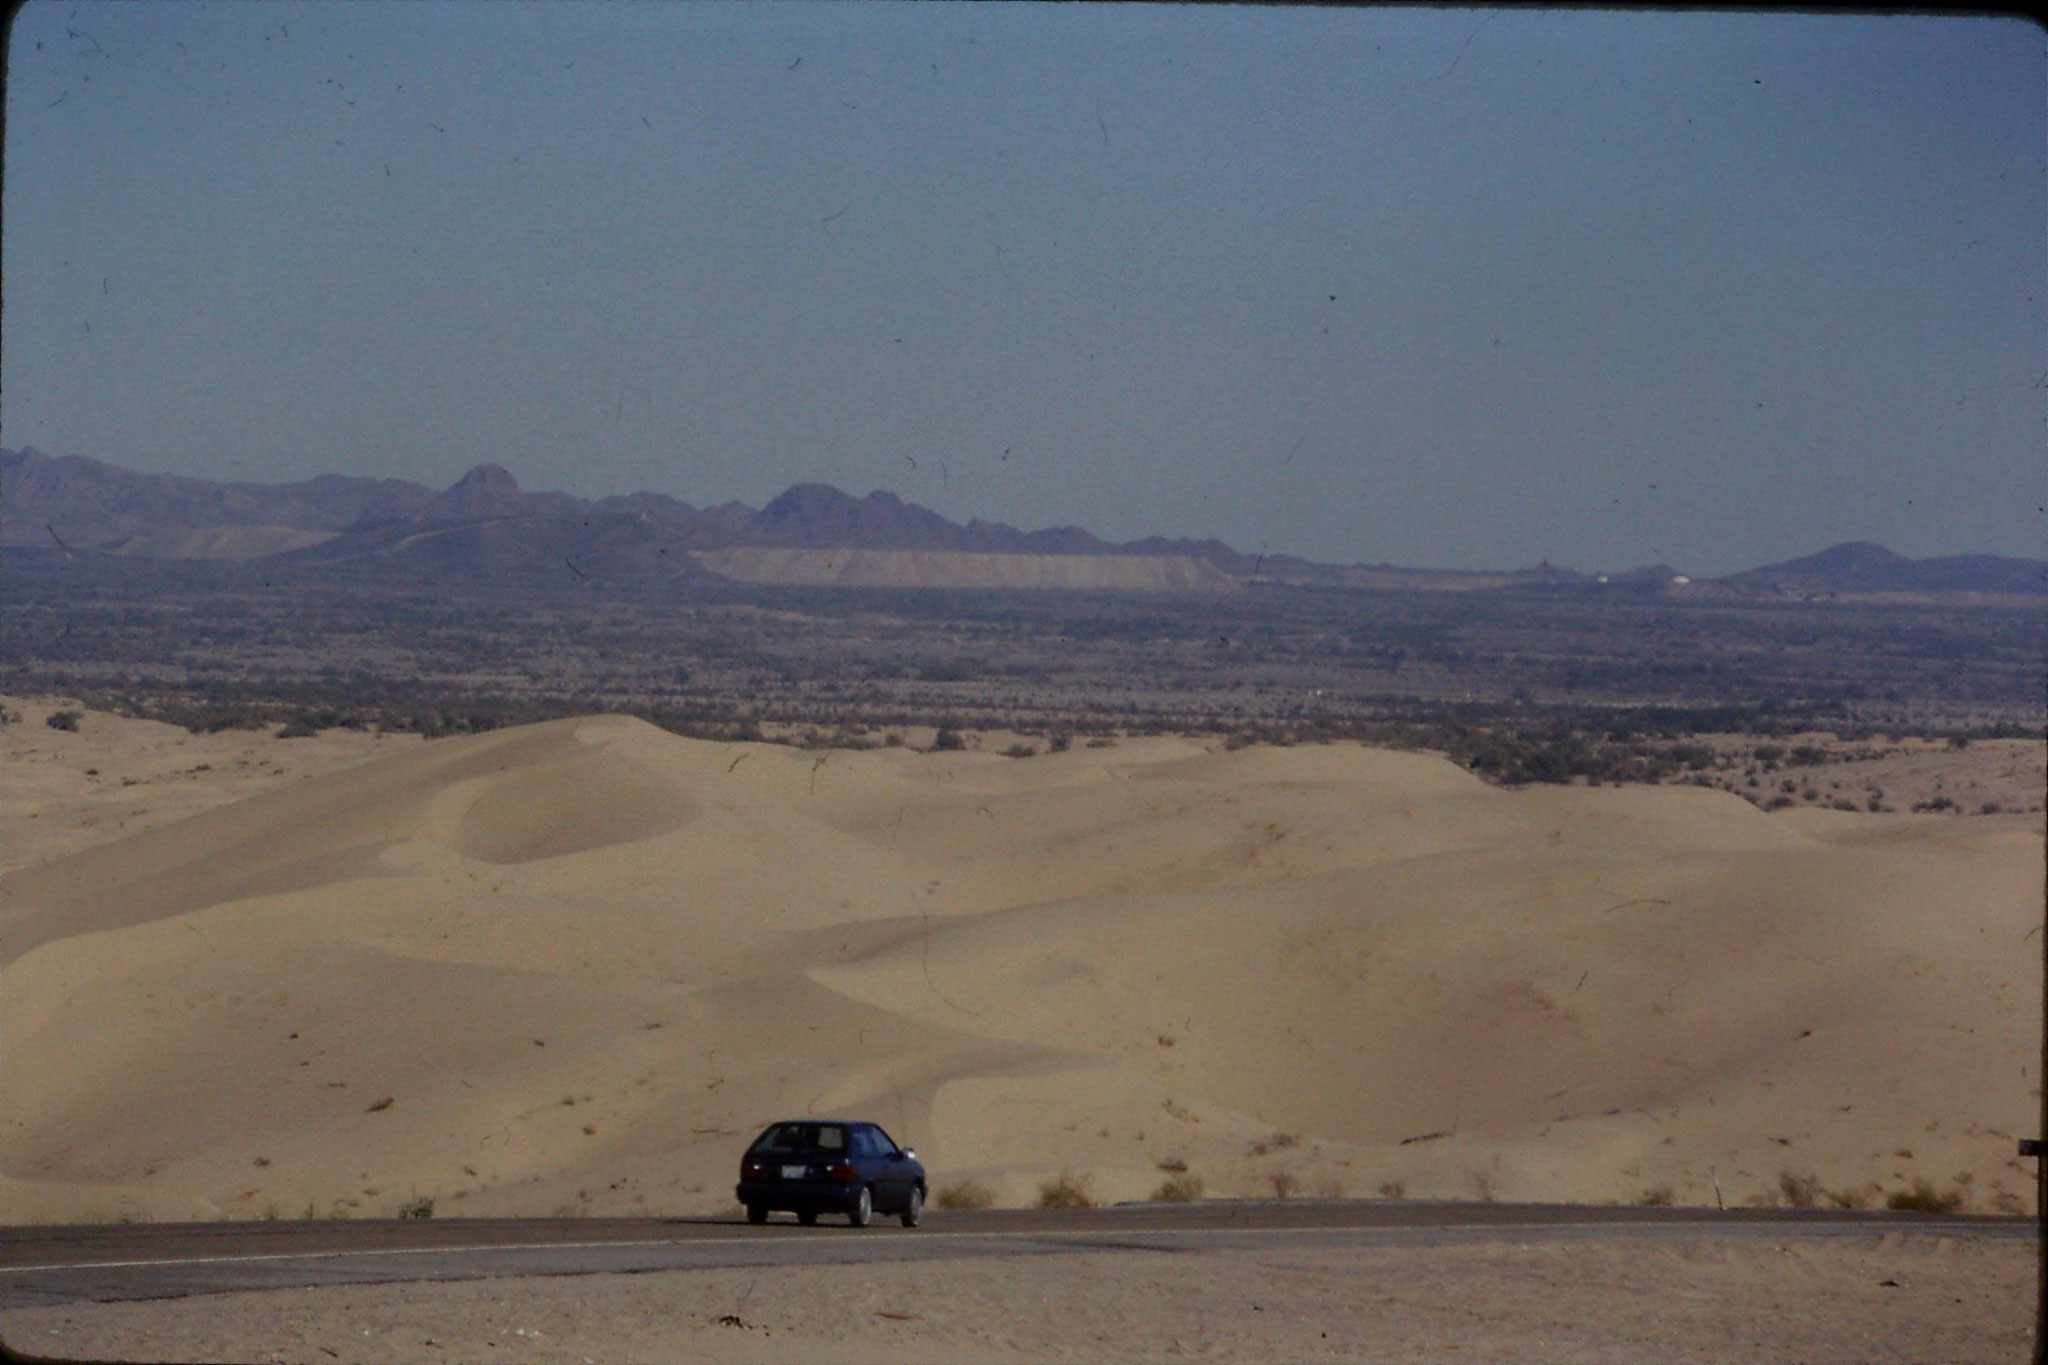 10/12/1990: 2: desert between Brawley and Blythe